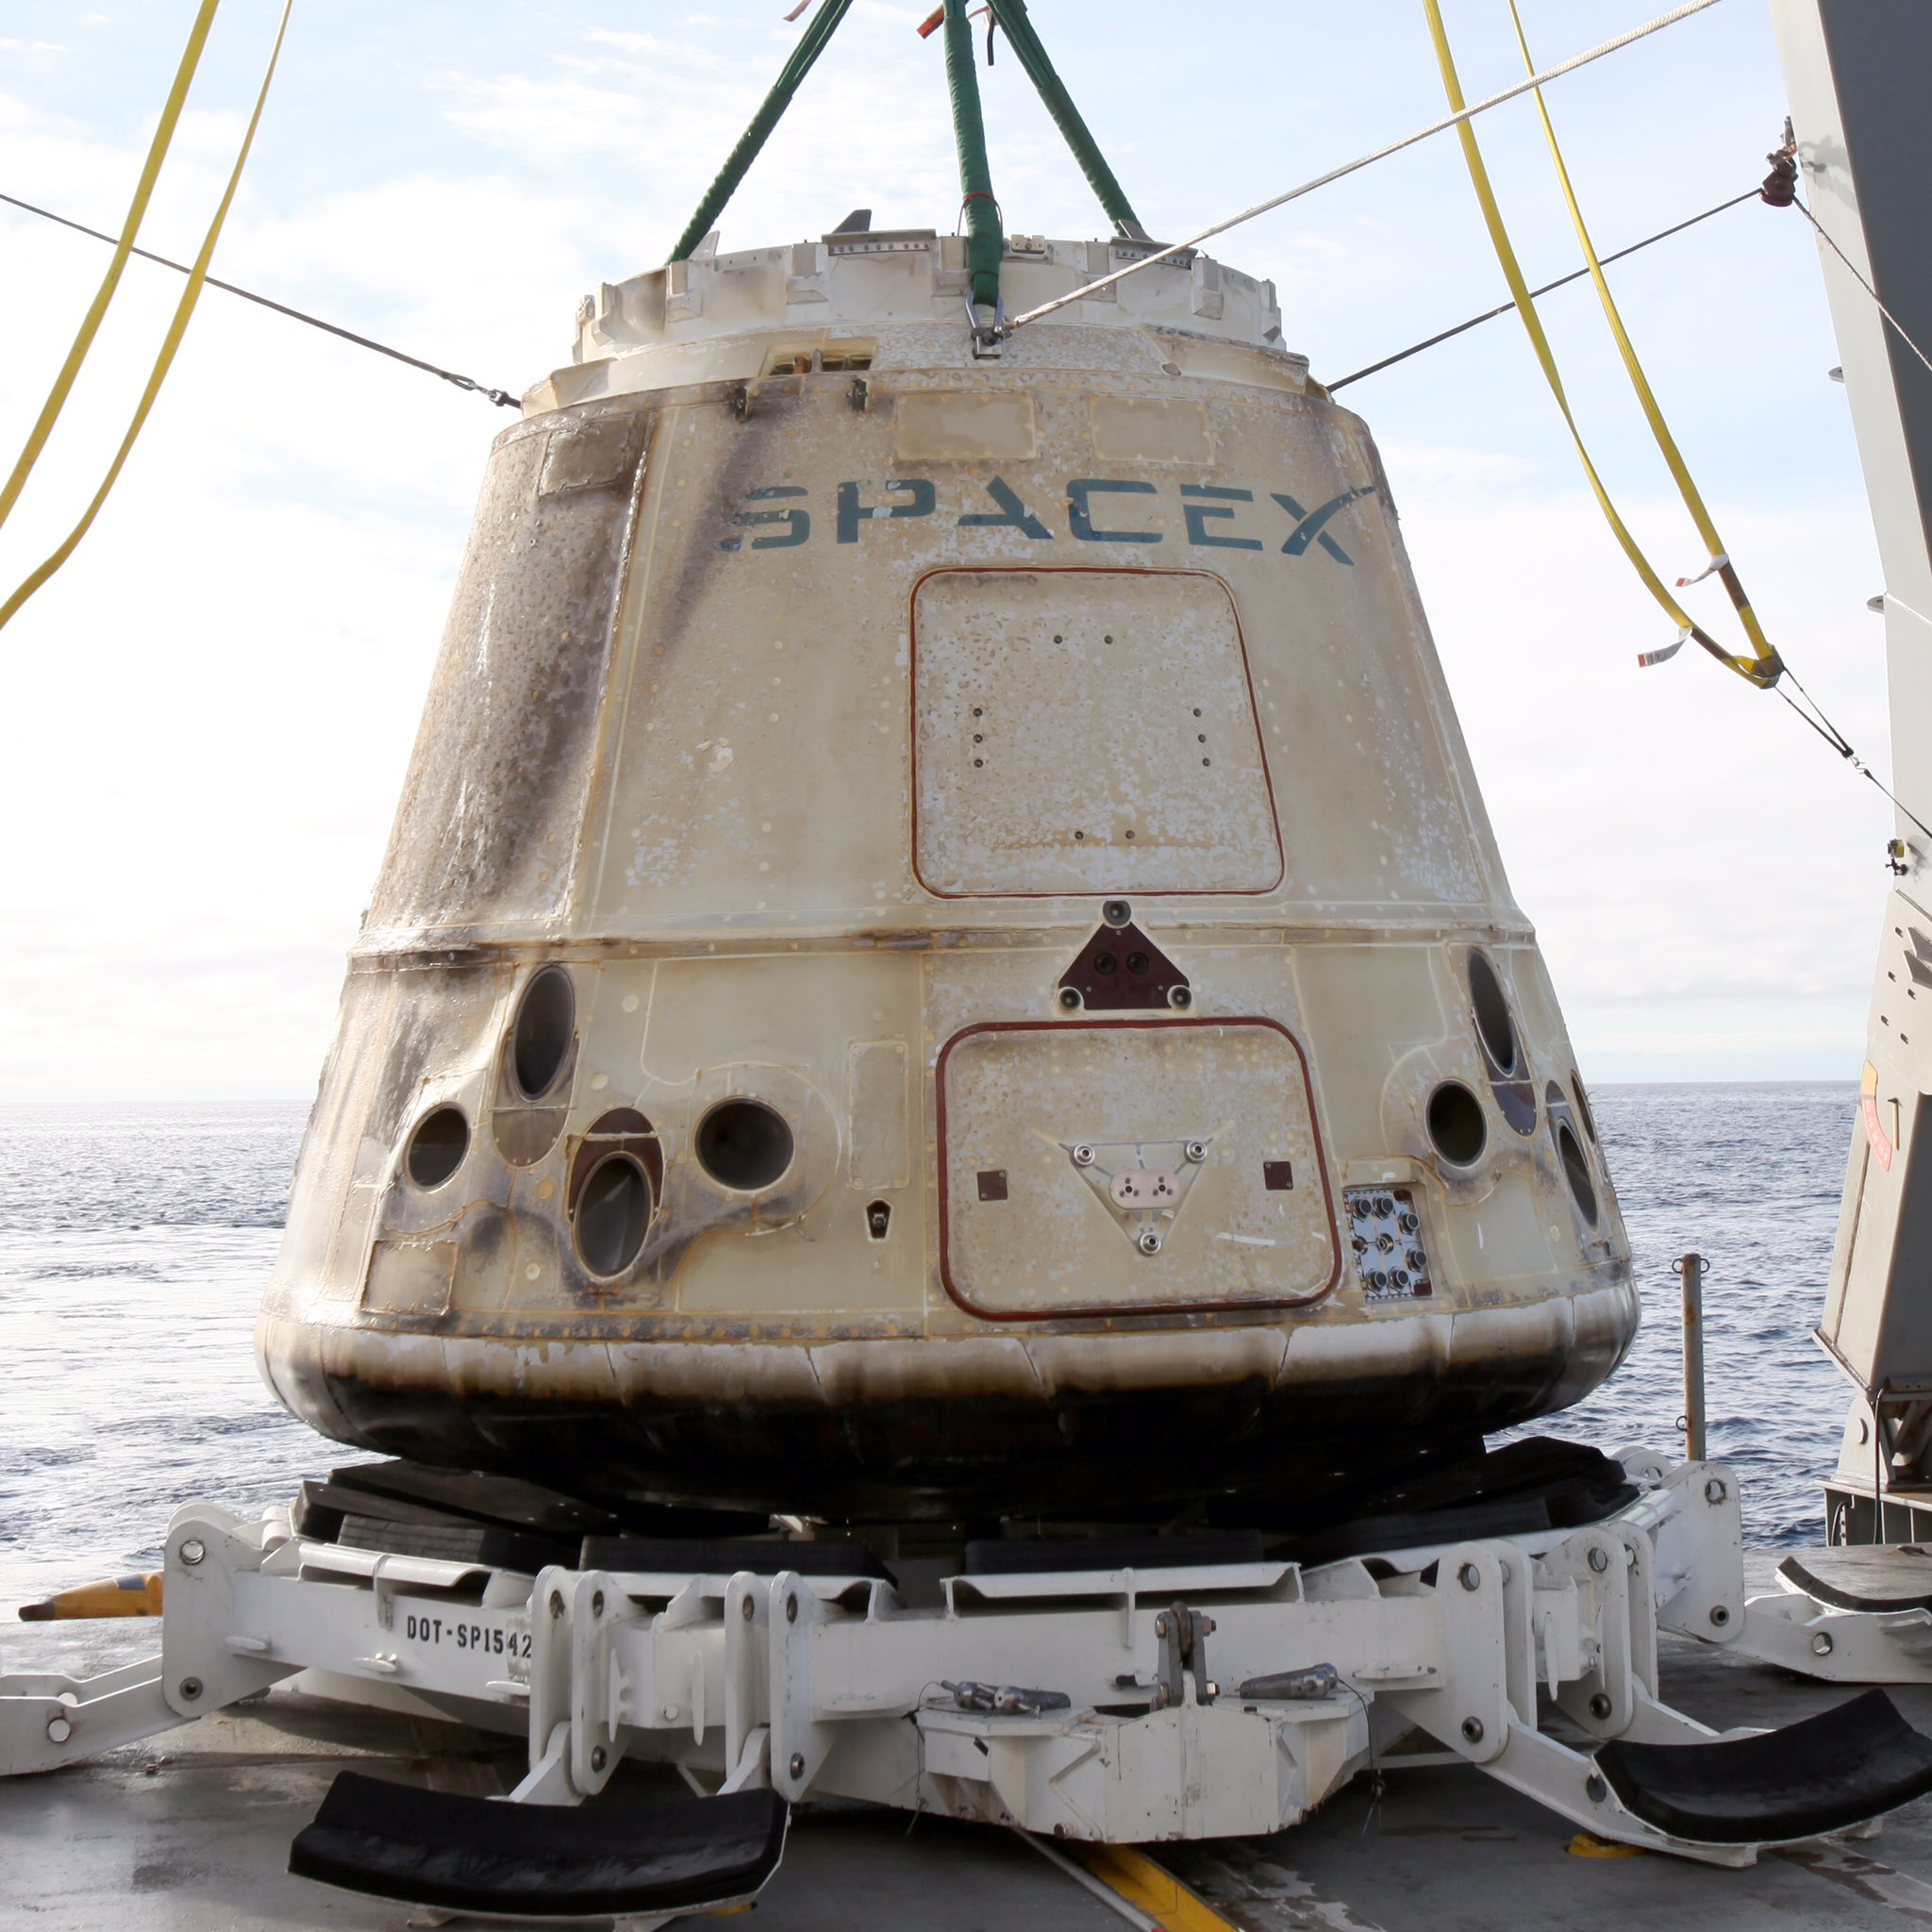 A little charred on the outside, but the student experiments that rode the Dragon back from space should be fine. Credit: SpaceX